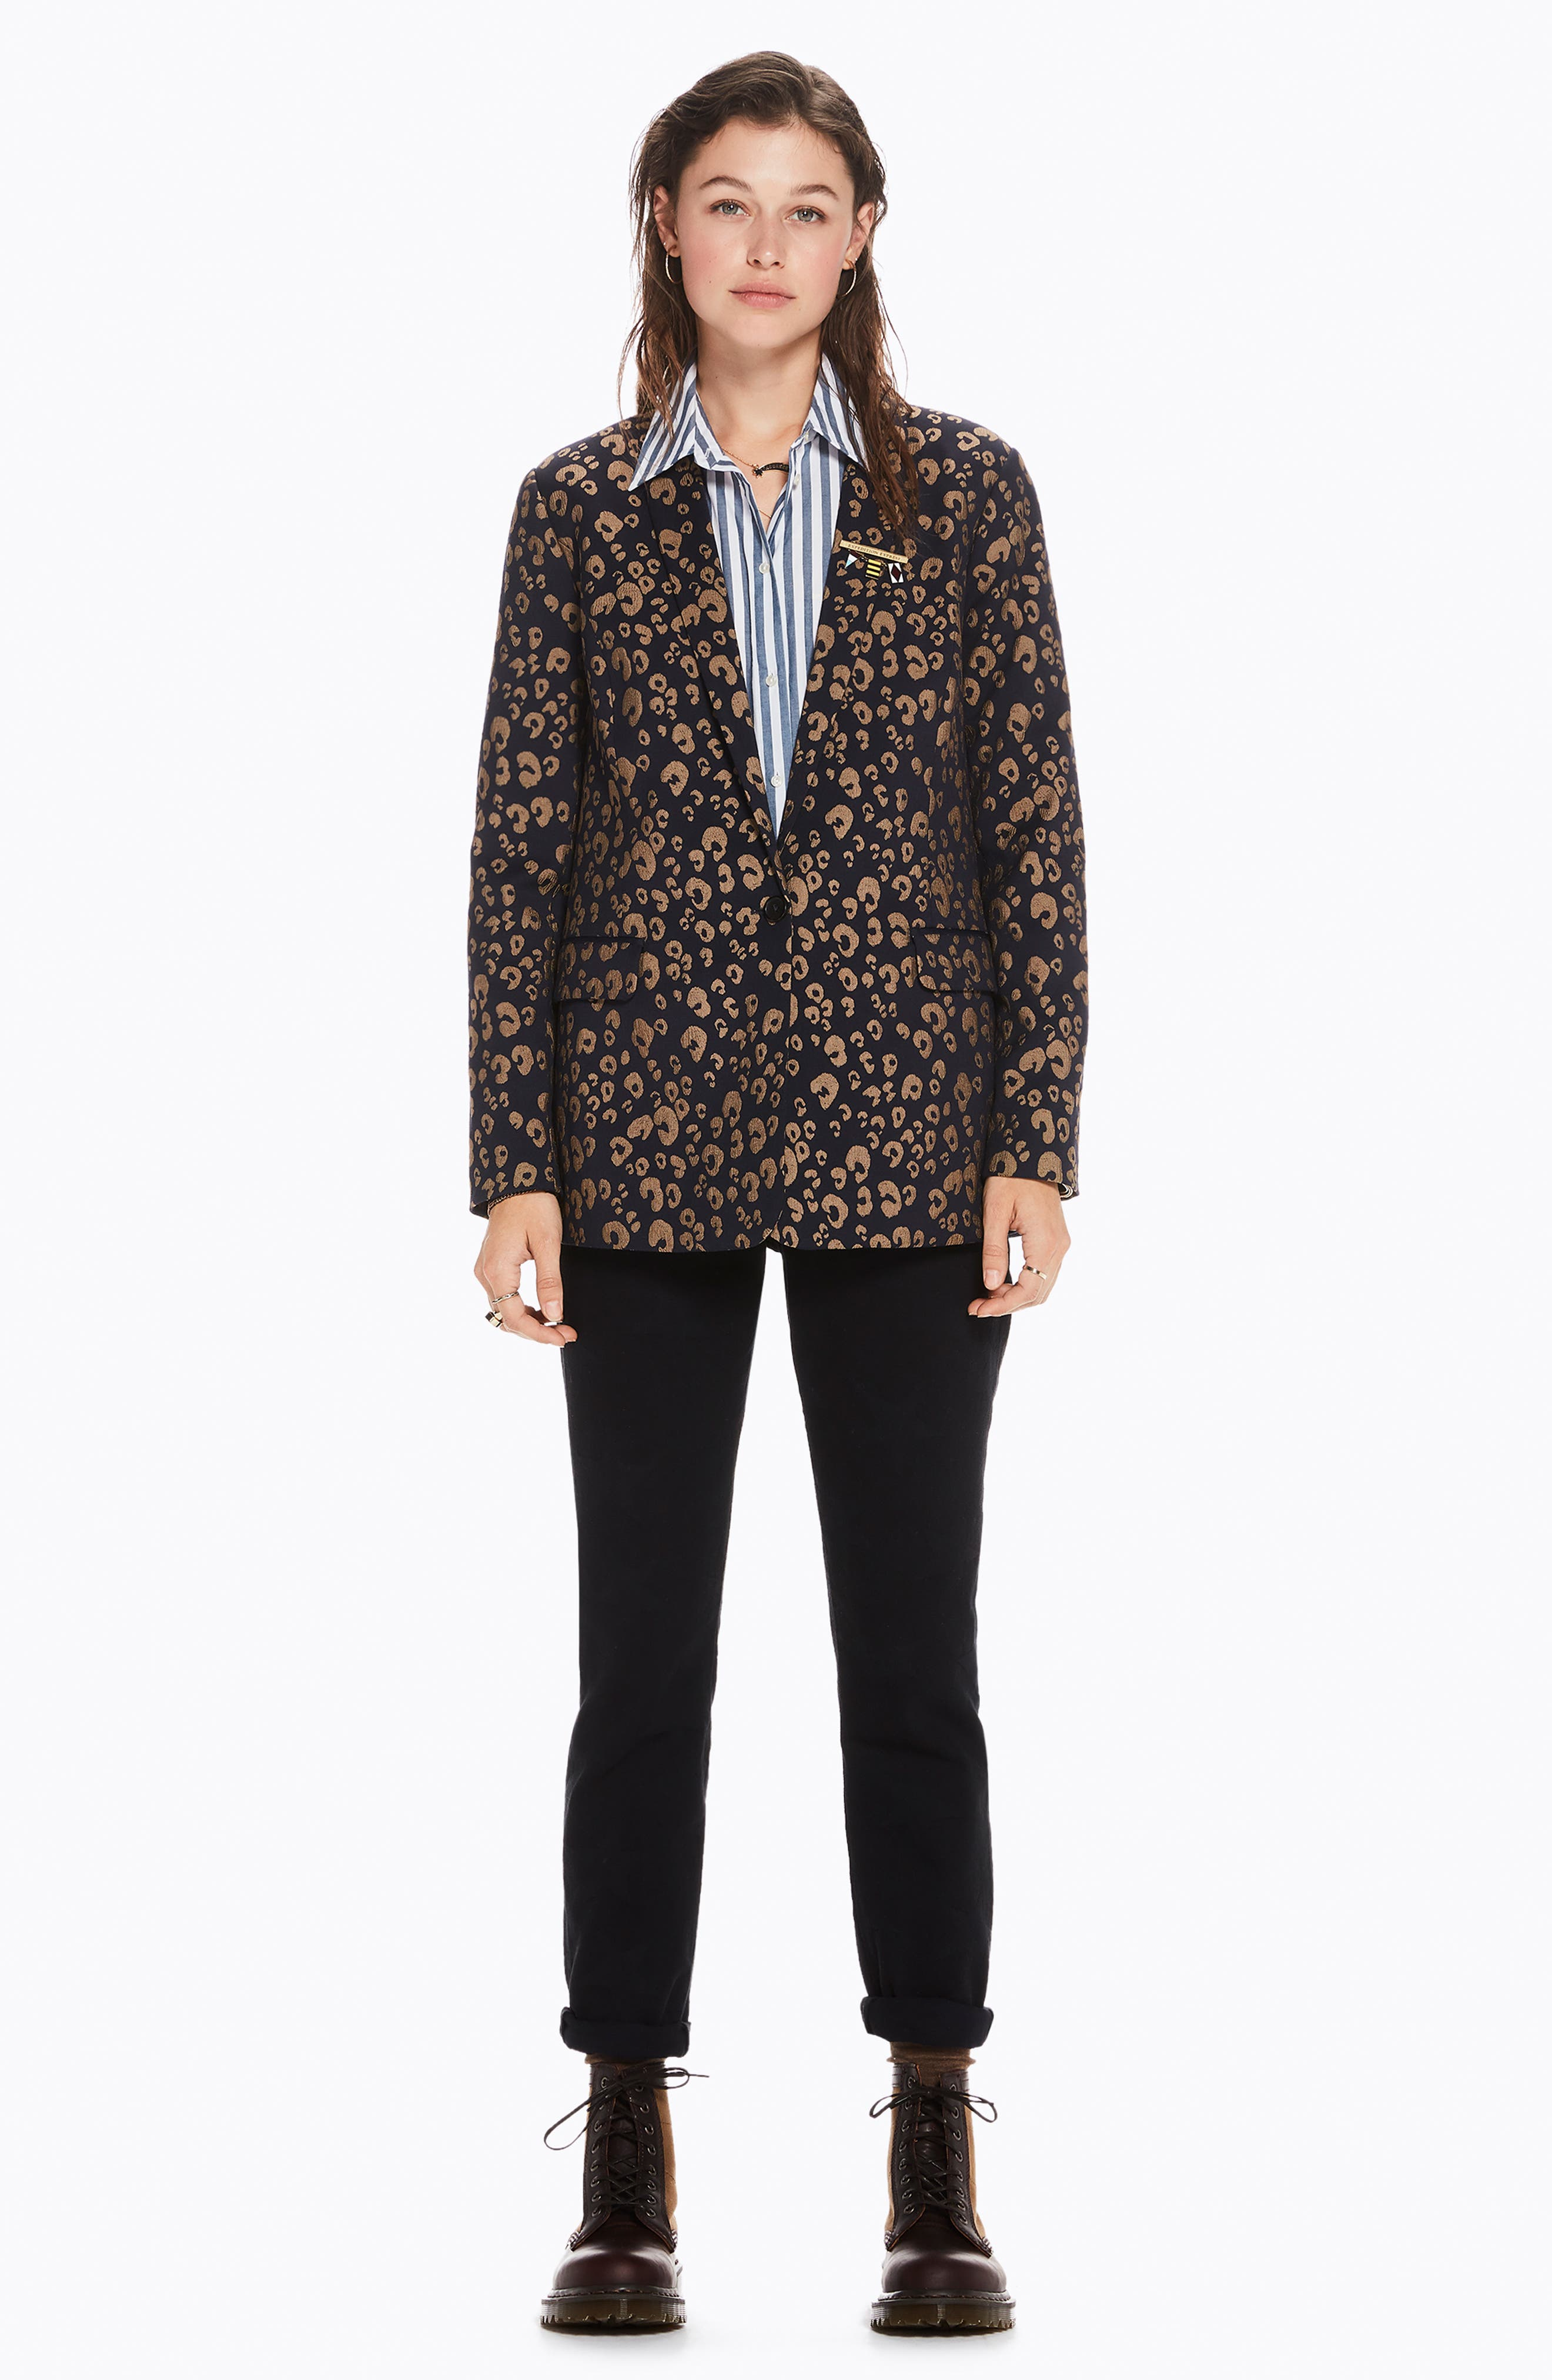 Stretch Jacquard Tailored Blazer,                             Alternate thumbnail 8, color,                             NAVY W/ GOLD LEOPARD PRINT